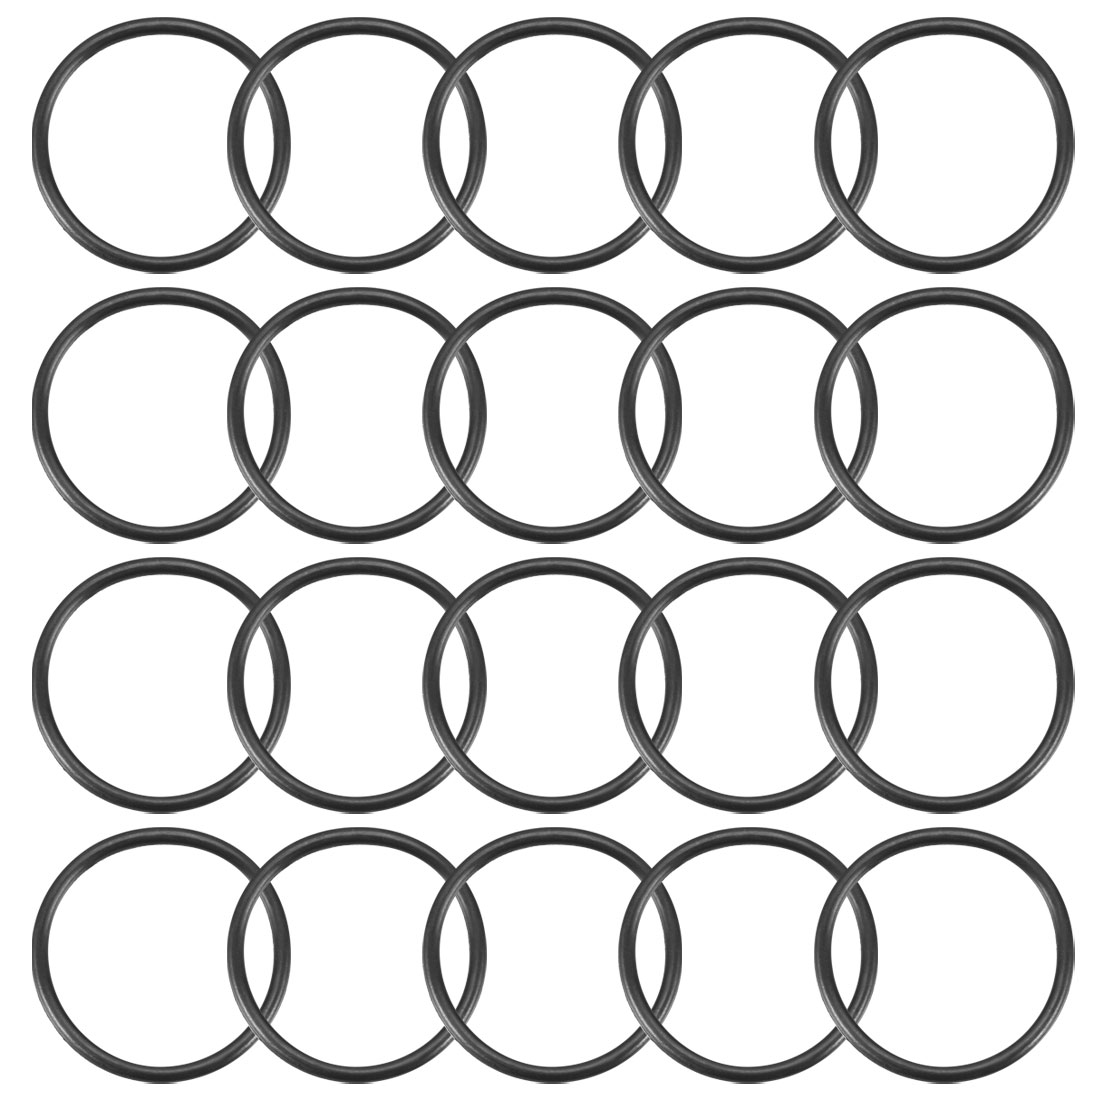 20Pcs Black 29mm Dia 2mm Thickness Nitrile Rubber O Ring NBR Sealing Grommets